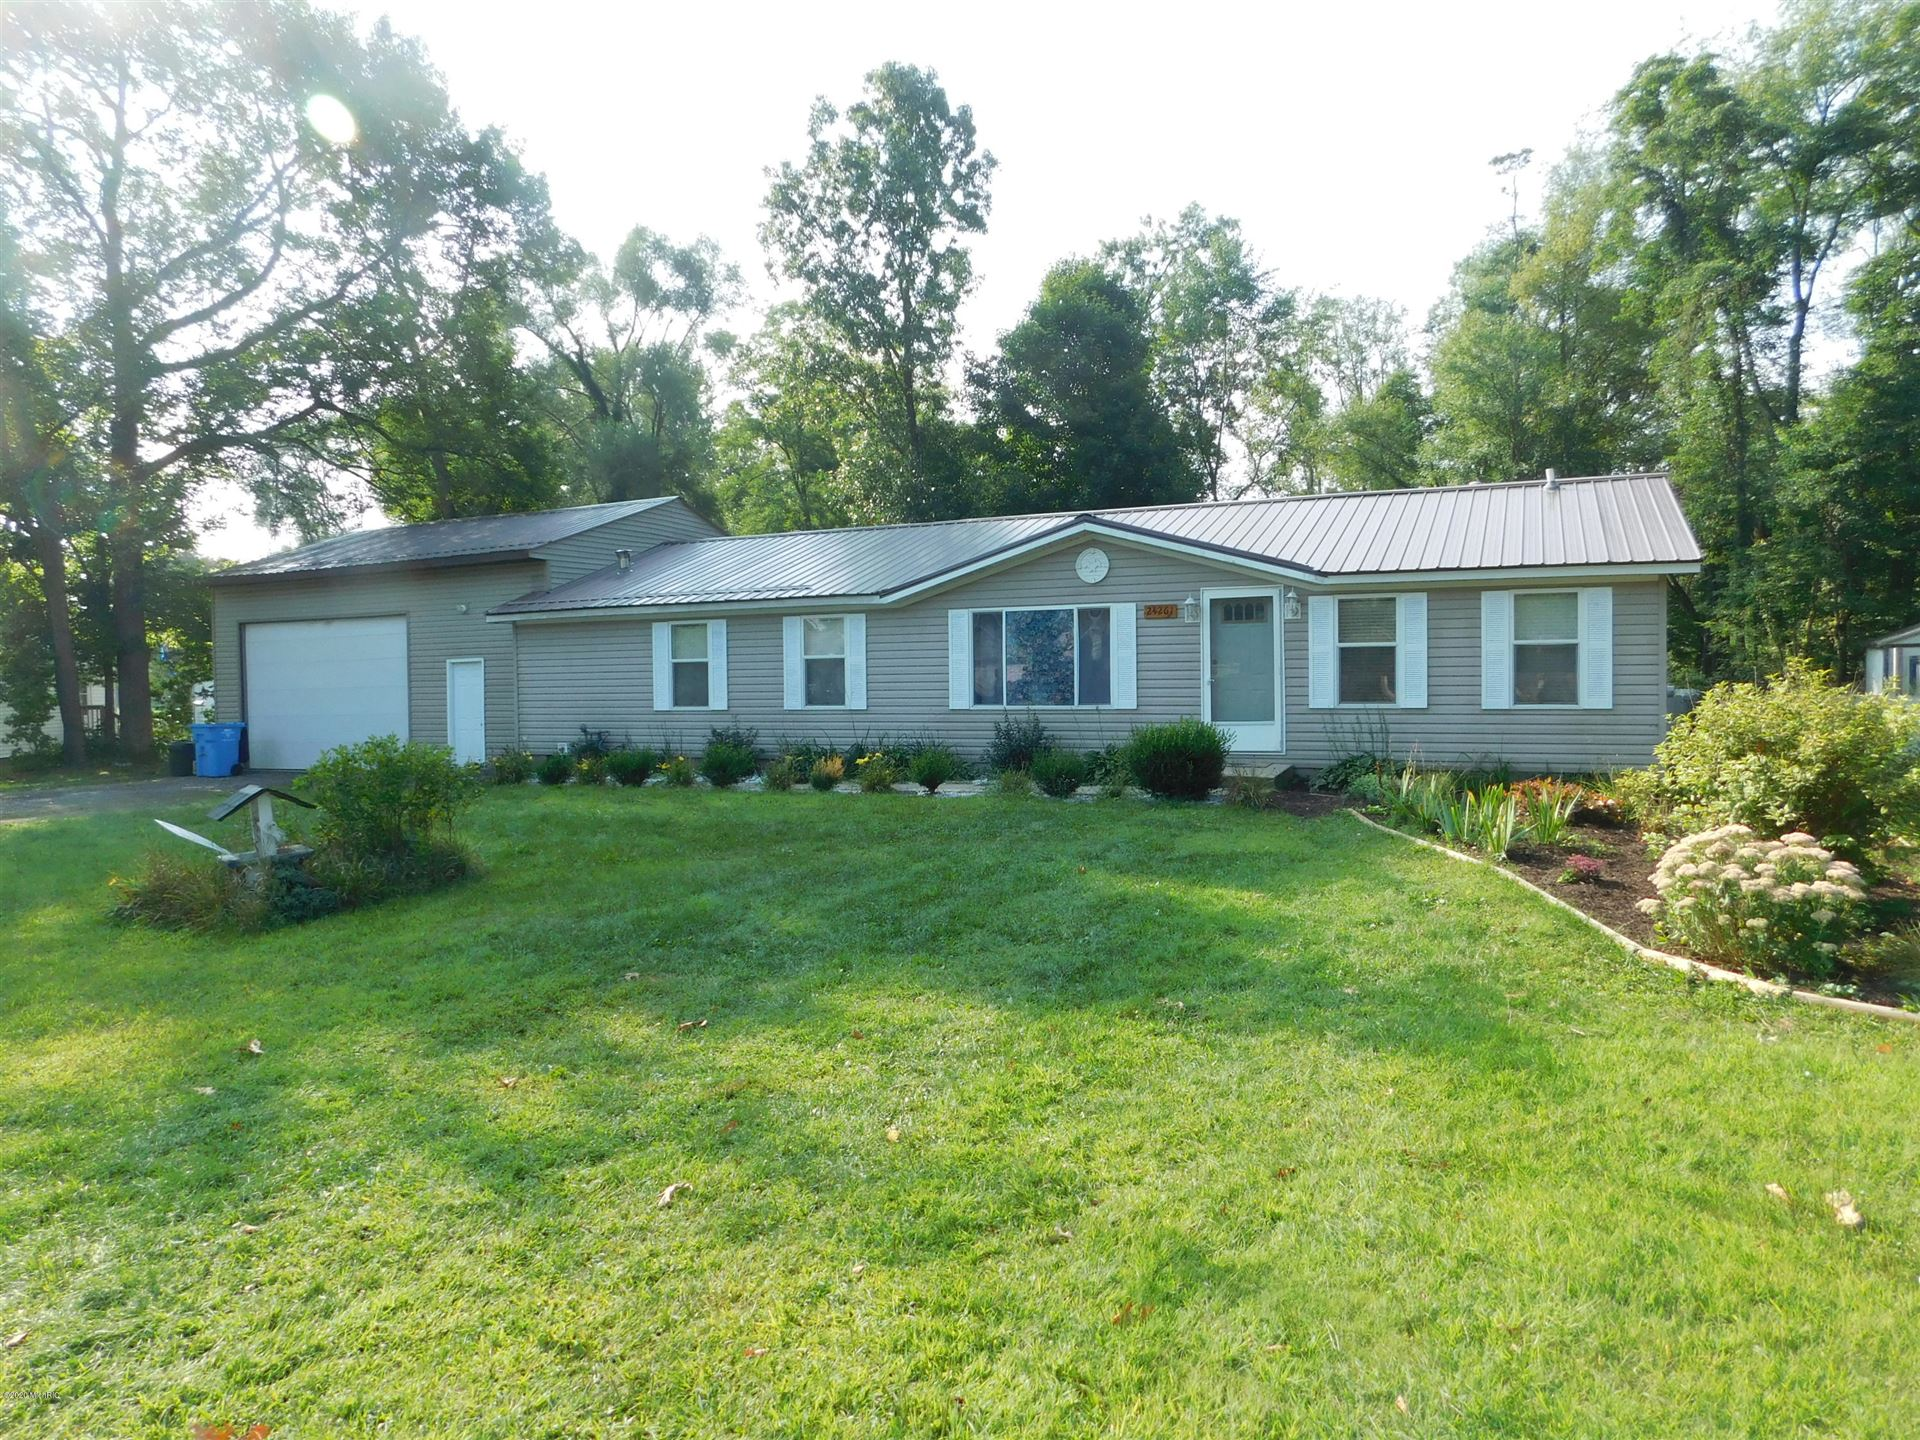 24261 Oak St, Edwardsburg, MI 49112 - MLS#: 20036900